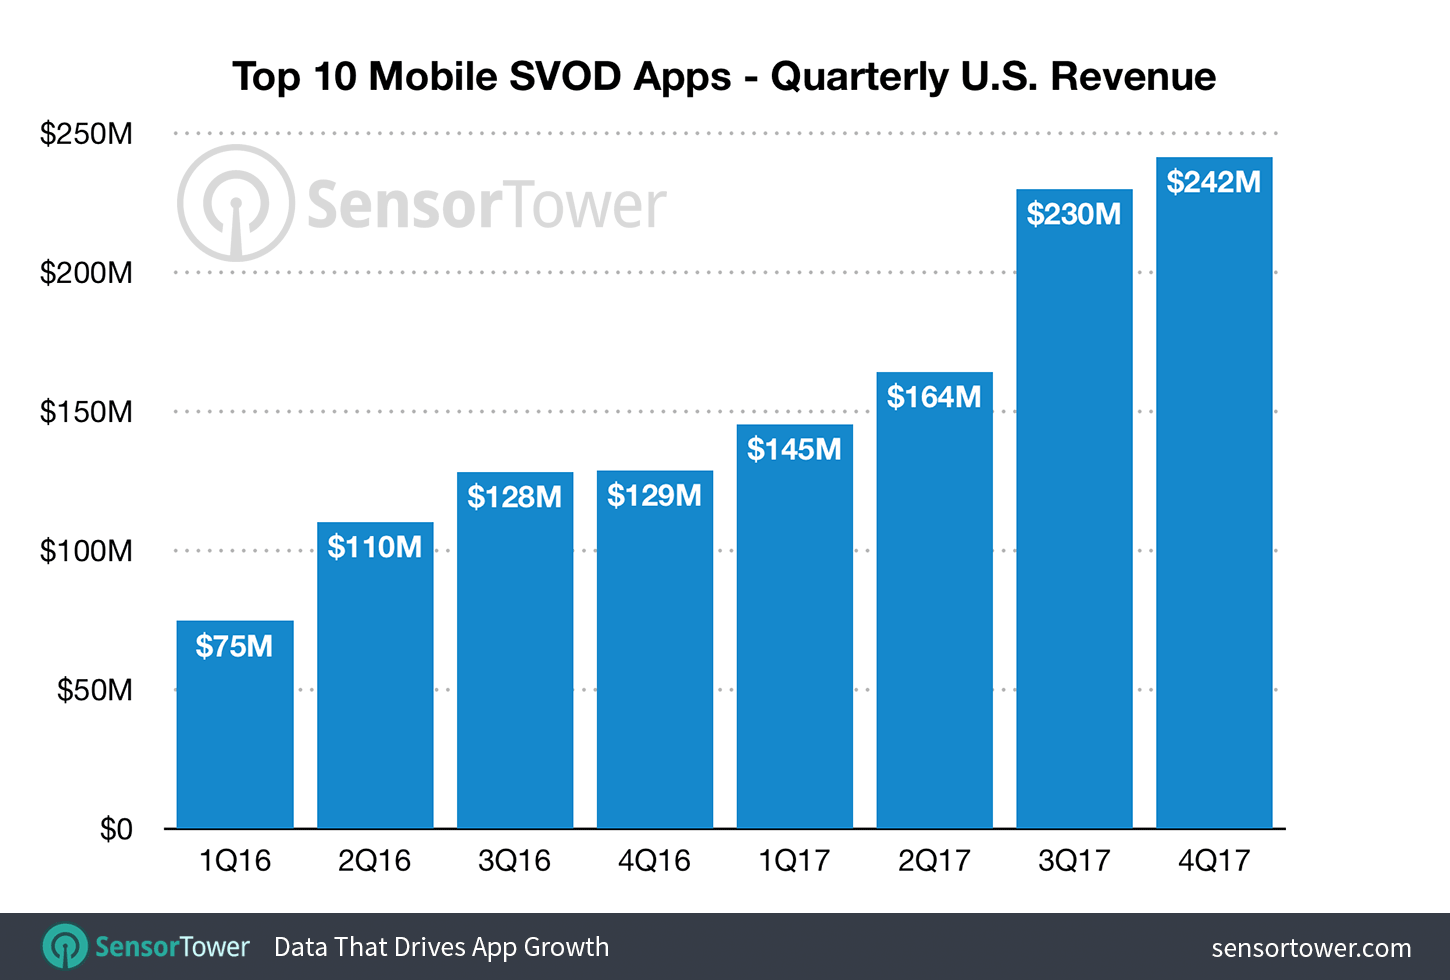 Quarterly Revenue for the Top 10 U.S. SVOD Apps for 2016 and 2017  - quarterly svod app revenue us - Revenue from the Top Subscription Video on Demand Apps Grew 77% Last Year in the U.S.